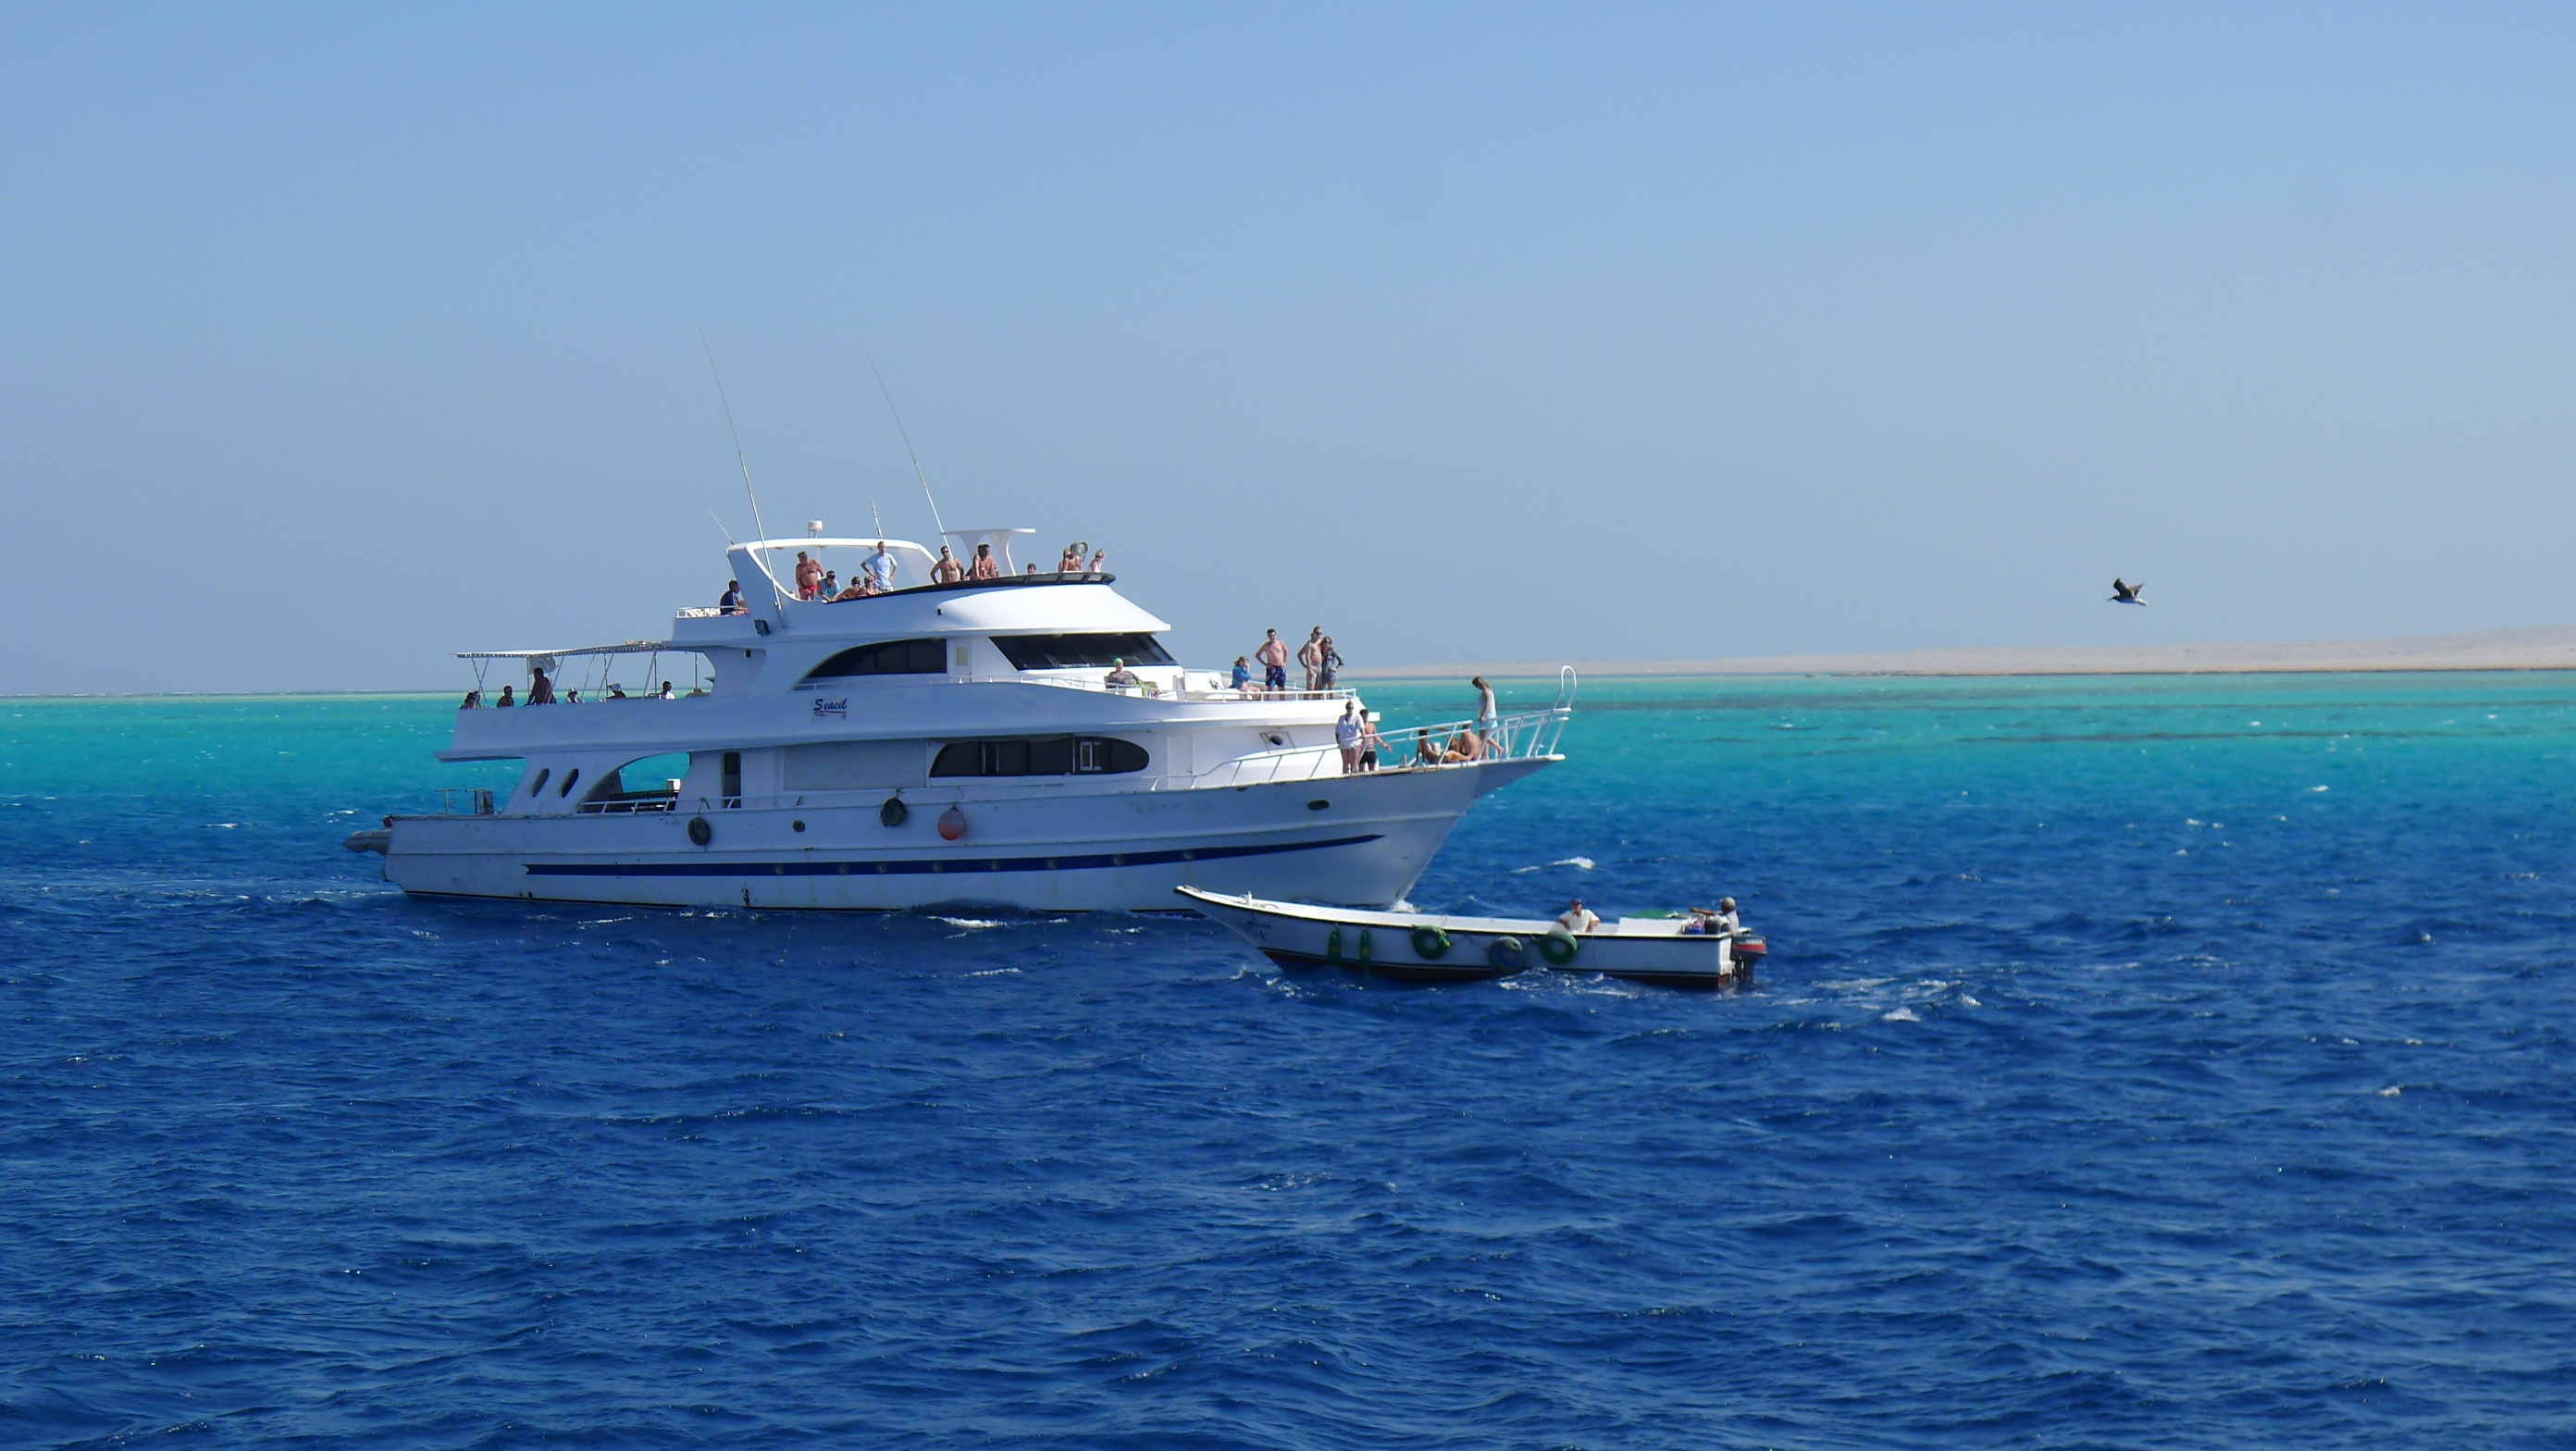 Very reasonably priced days out on a boat to go snorkeling in beautiful seas